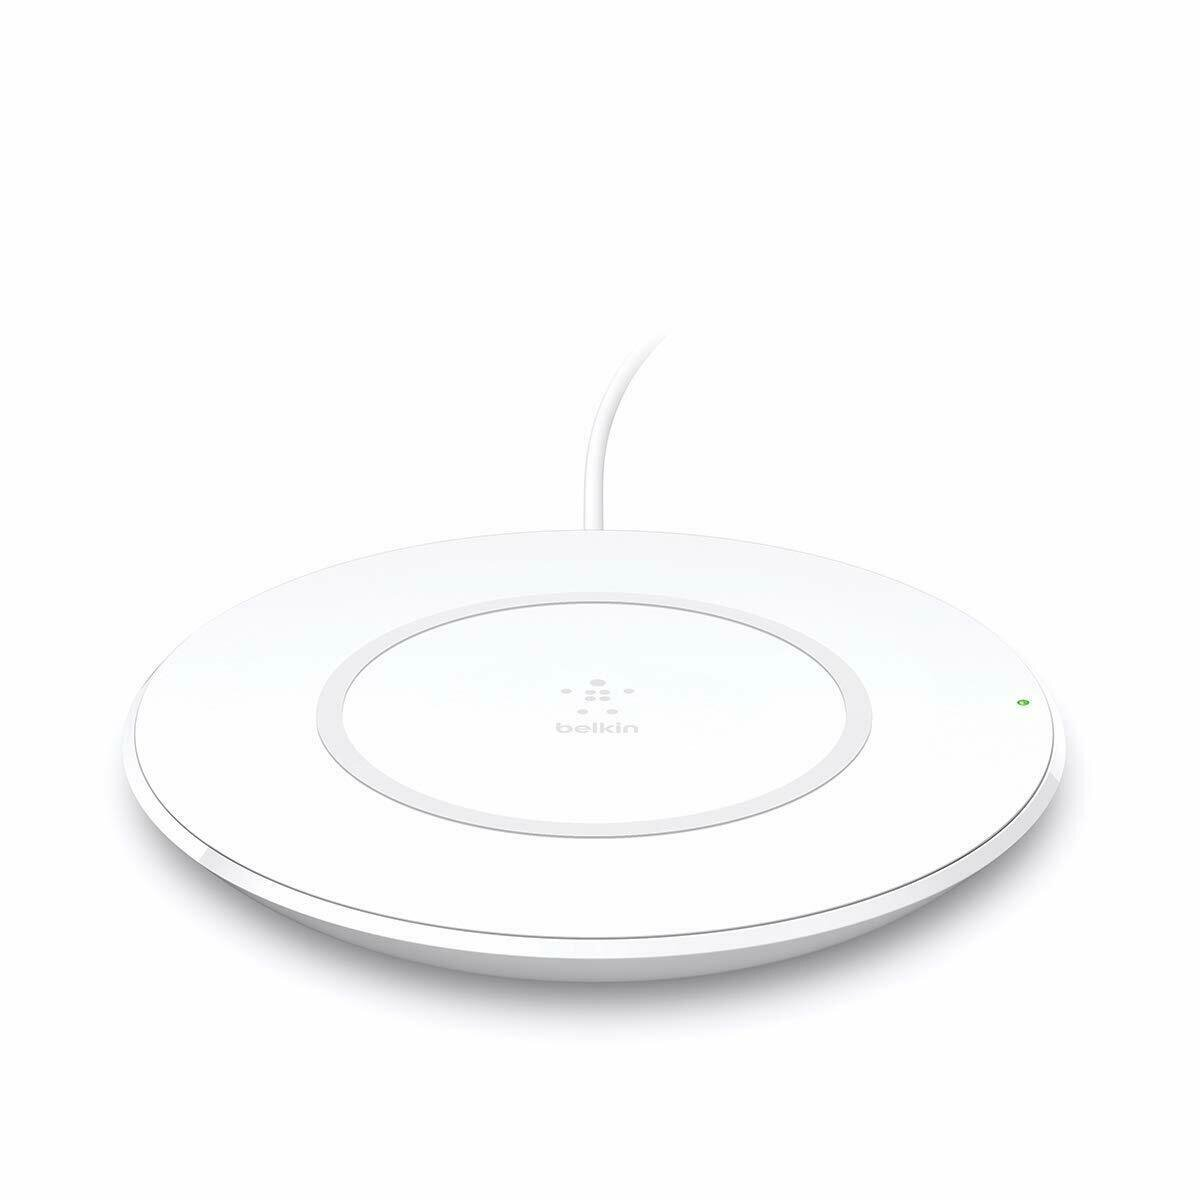 Belkin Boost Up Wireless Qi-Device Charging Pad (iPhone 8 and up)   Reg Price: $50   Today's Price: $13 (74% off!)    via eBay